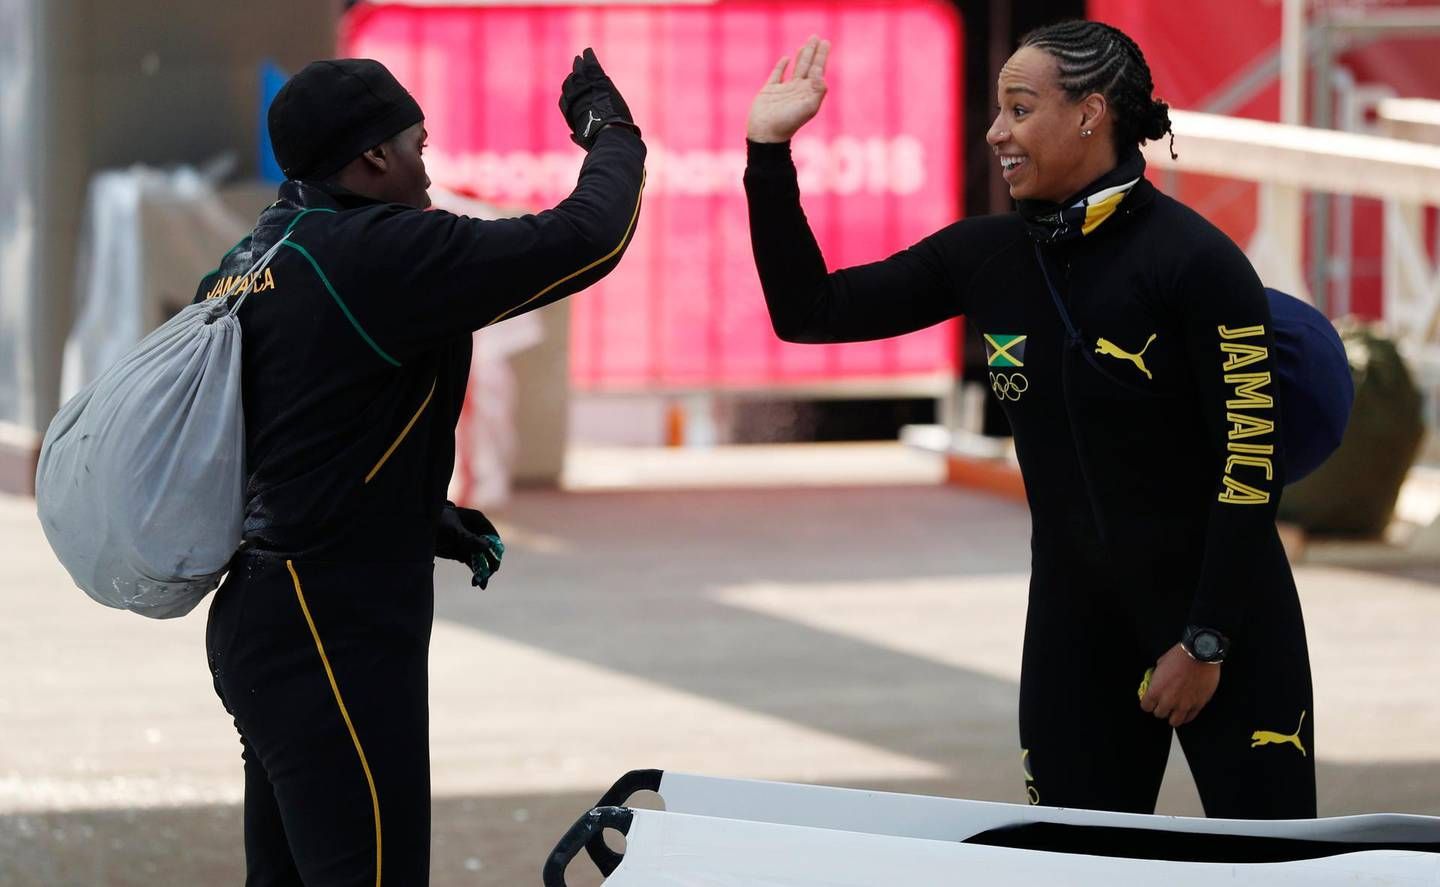 Bobsleigh – Pyeongchang 2018 Winter Olympics – Women's Training – Olympic Sliding Centre - Pyeongchang, South Korea – February 8, 2018 - Jazmine Fenlator-Victorian and Carrie Russell of Jamaica trade high-fives.  REUTERS/Edgar Su